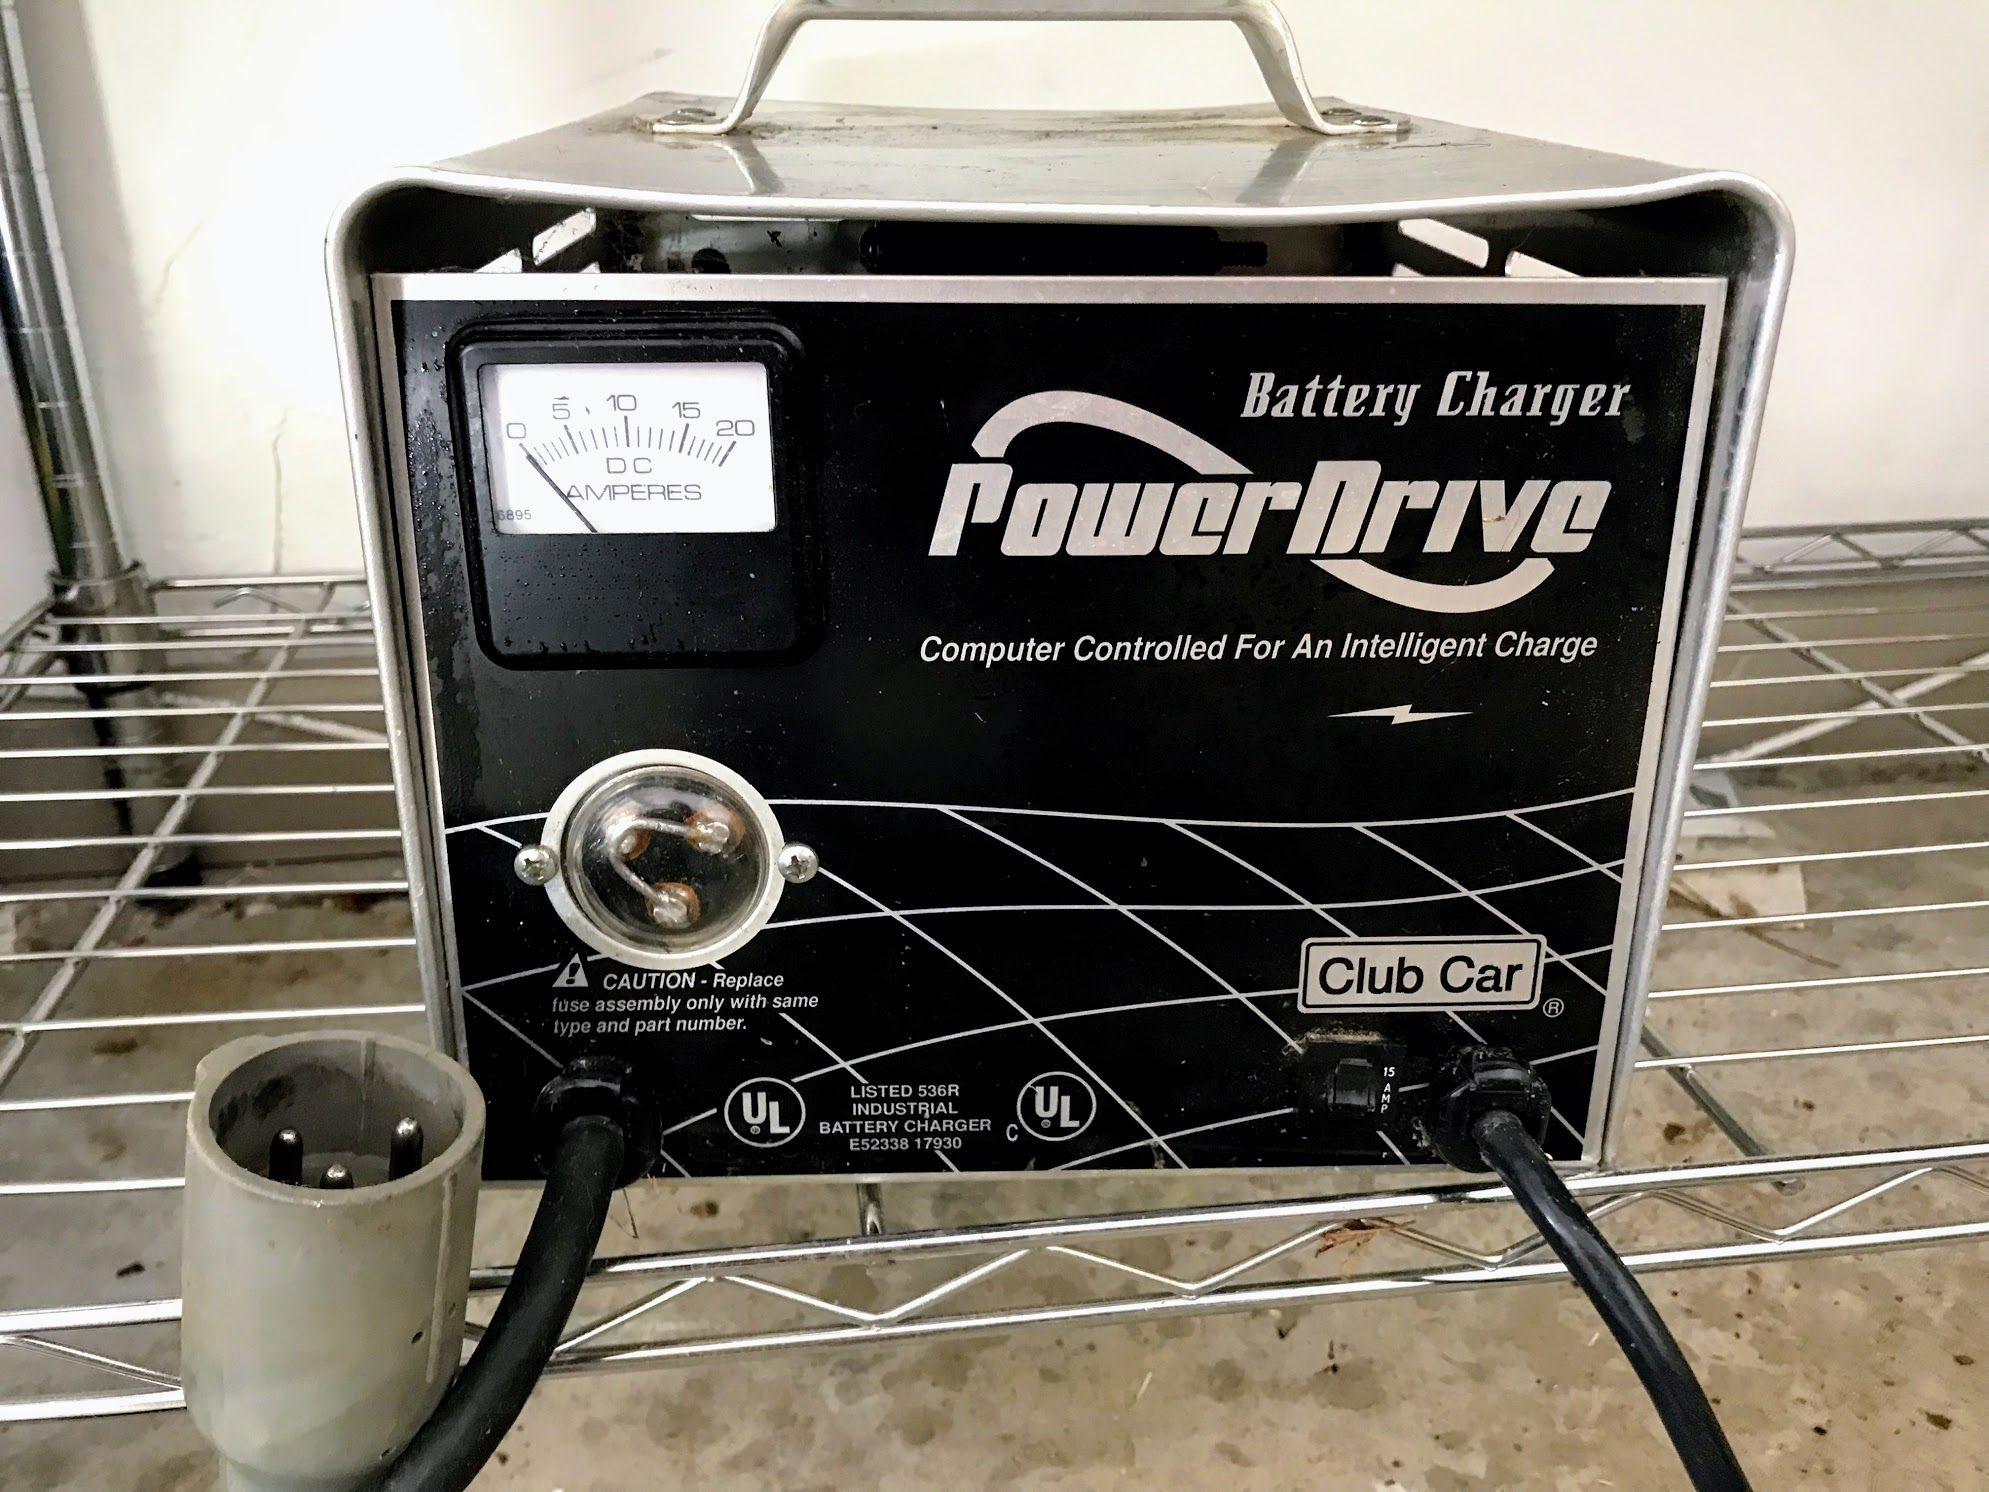 Golf Cart Batteries Not Charging Here S Some Help Golf Cart Batteries Golf Cart Battery Maintenance Golf Carts